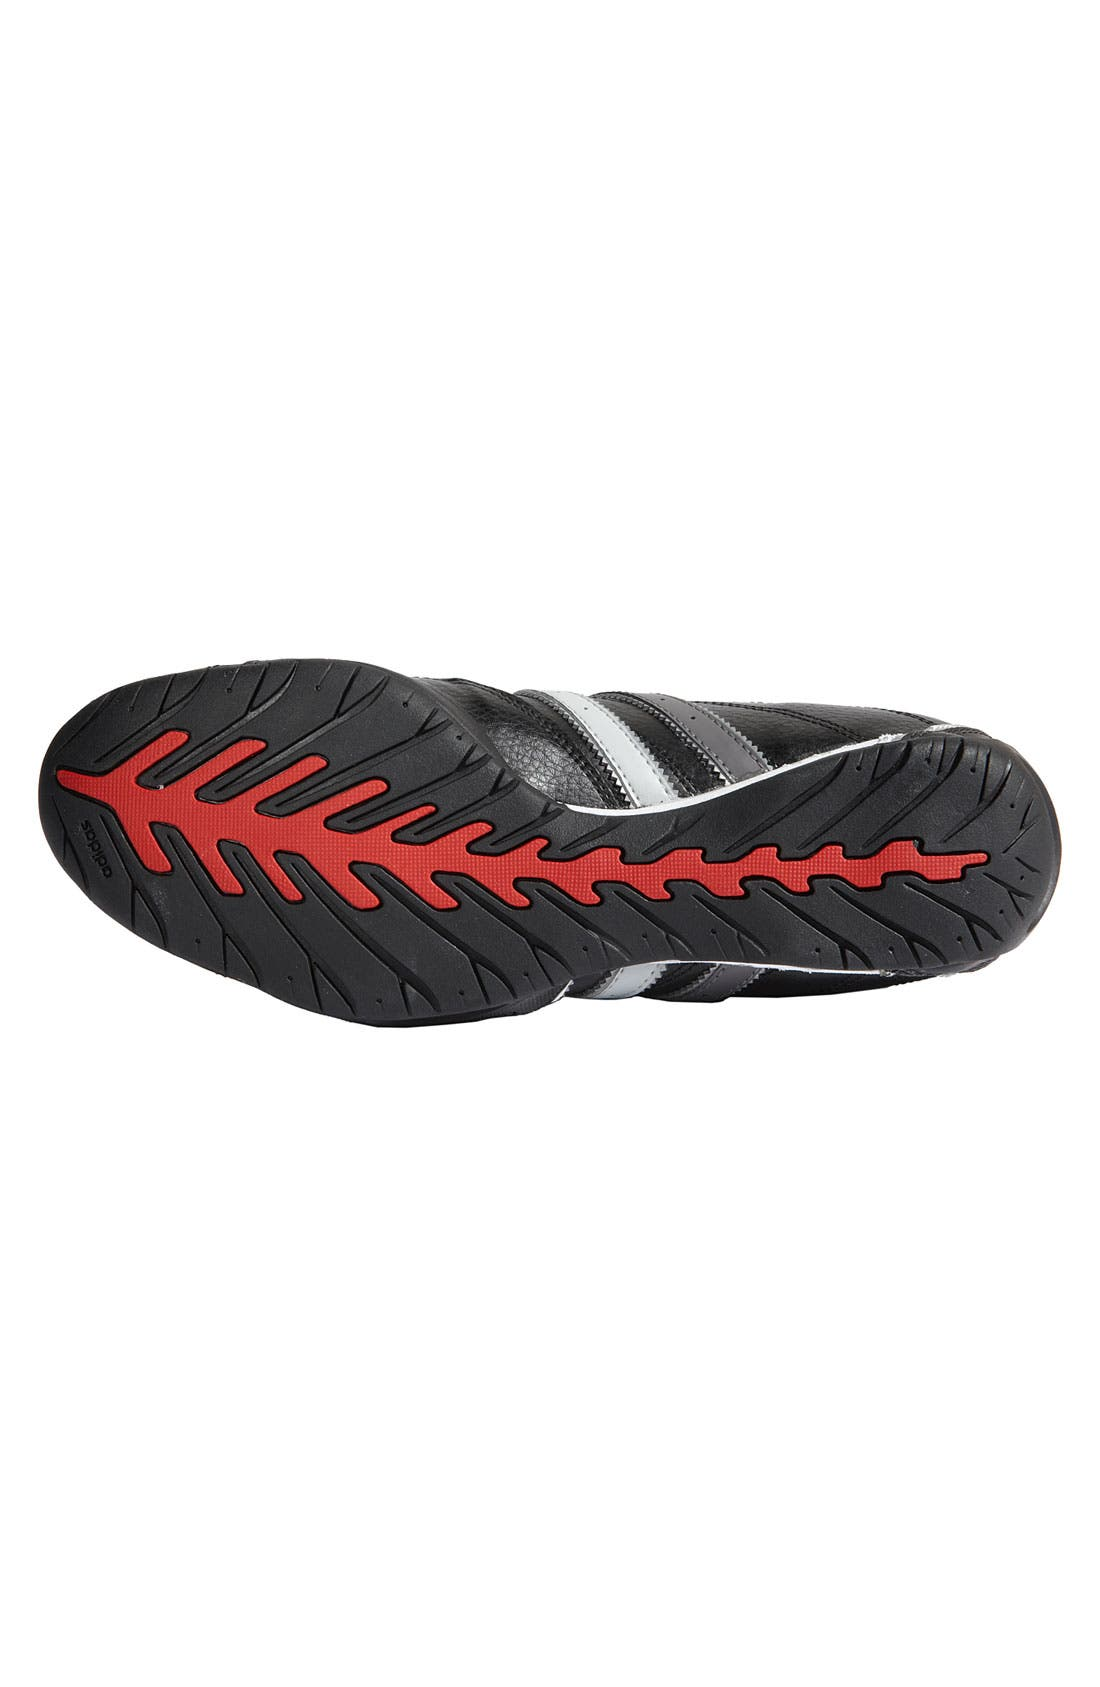 'Adi Racer Lo' Driving Shoe,                             Alternate thumbnail 4, color,                             001